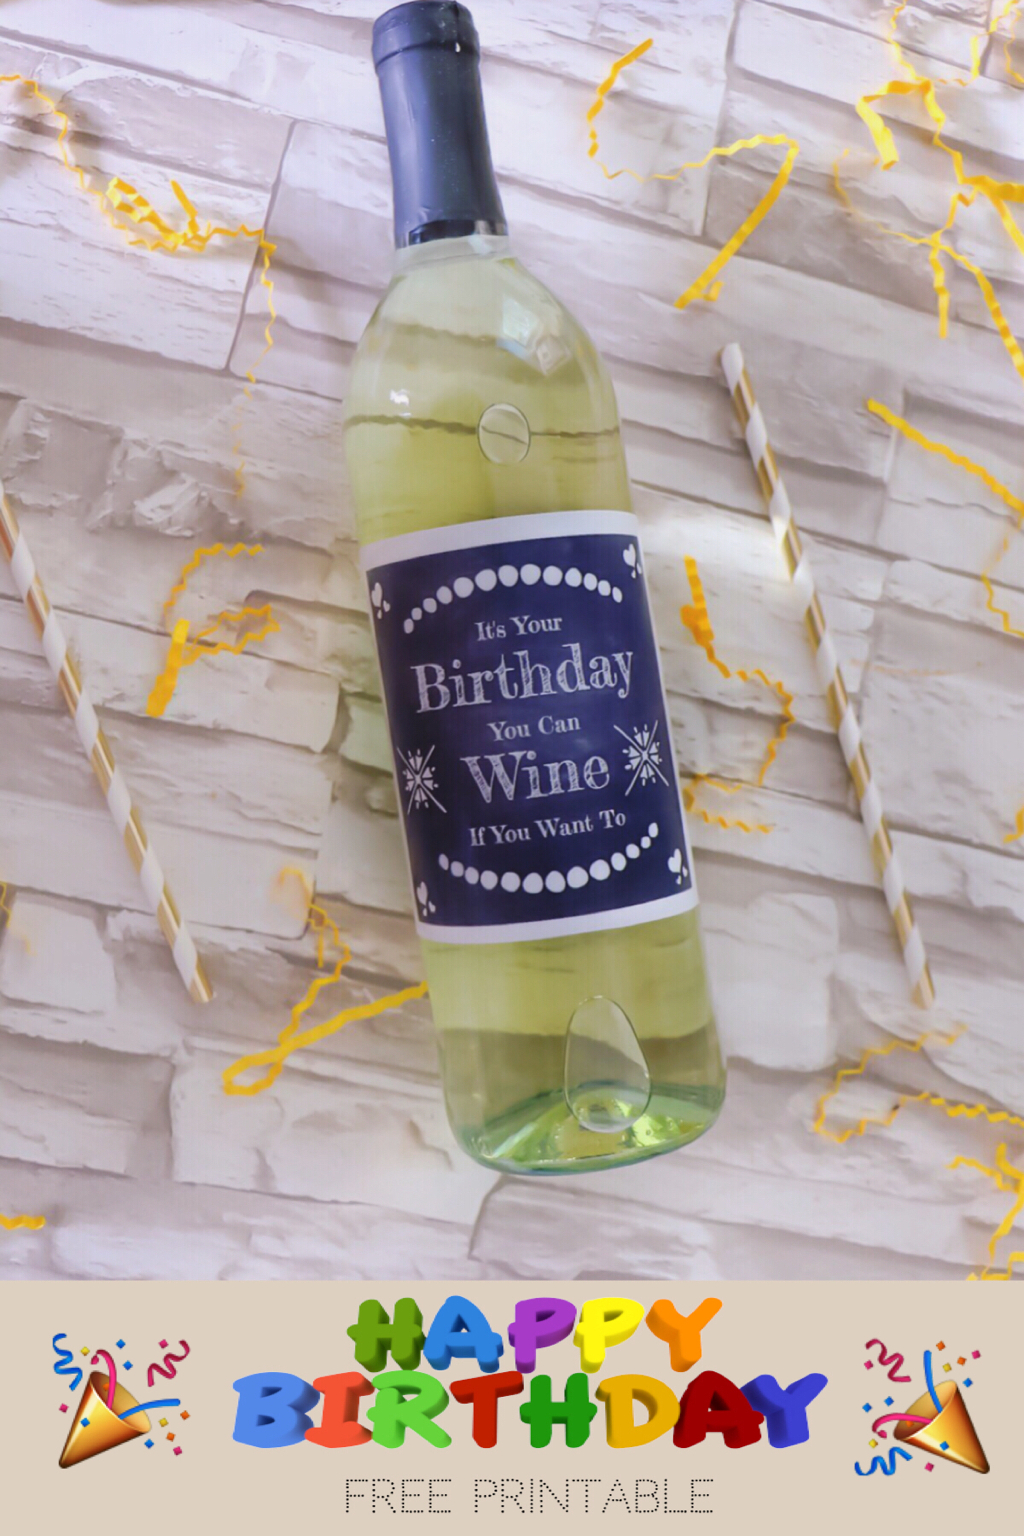 It's Your Birthday You Can Wine If You Want To Free Wine Label | The - Free Printable Wine Labels For Birthday